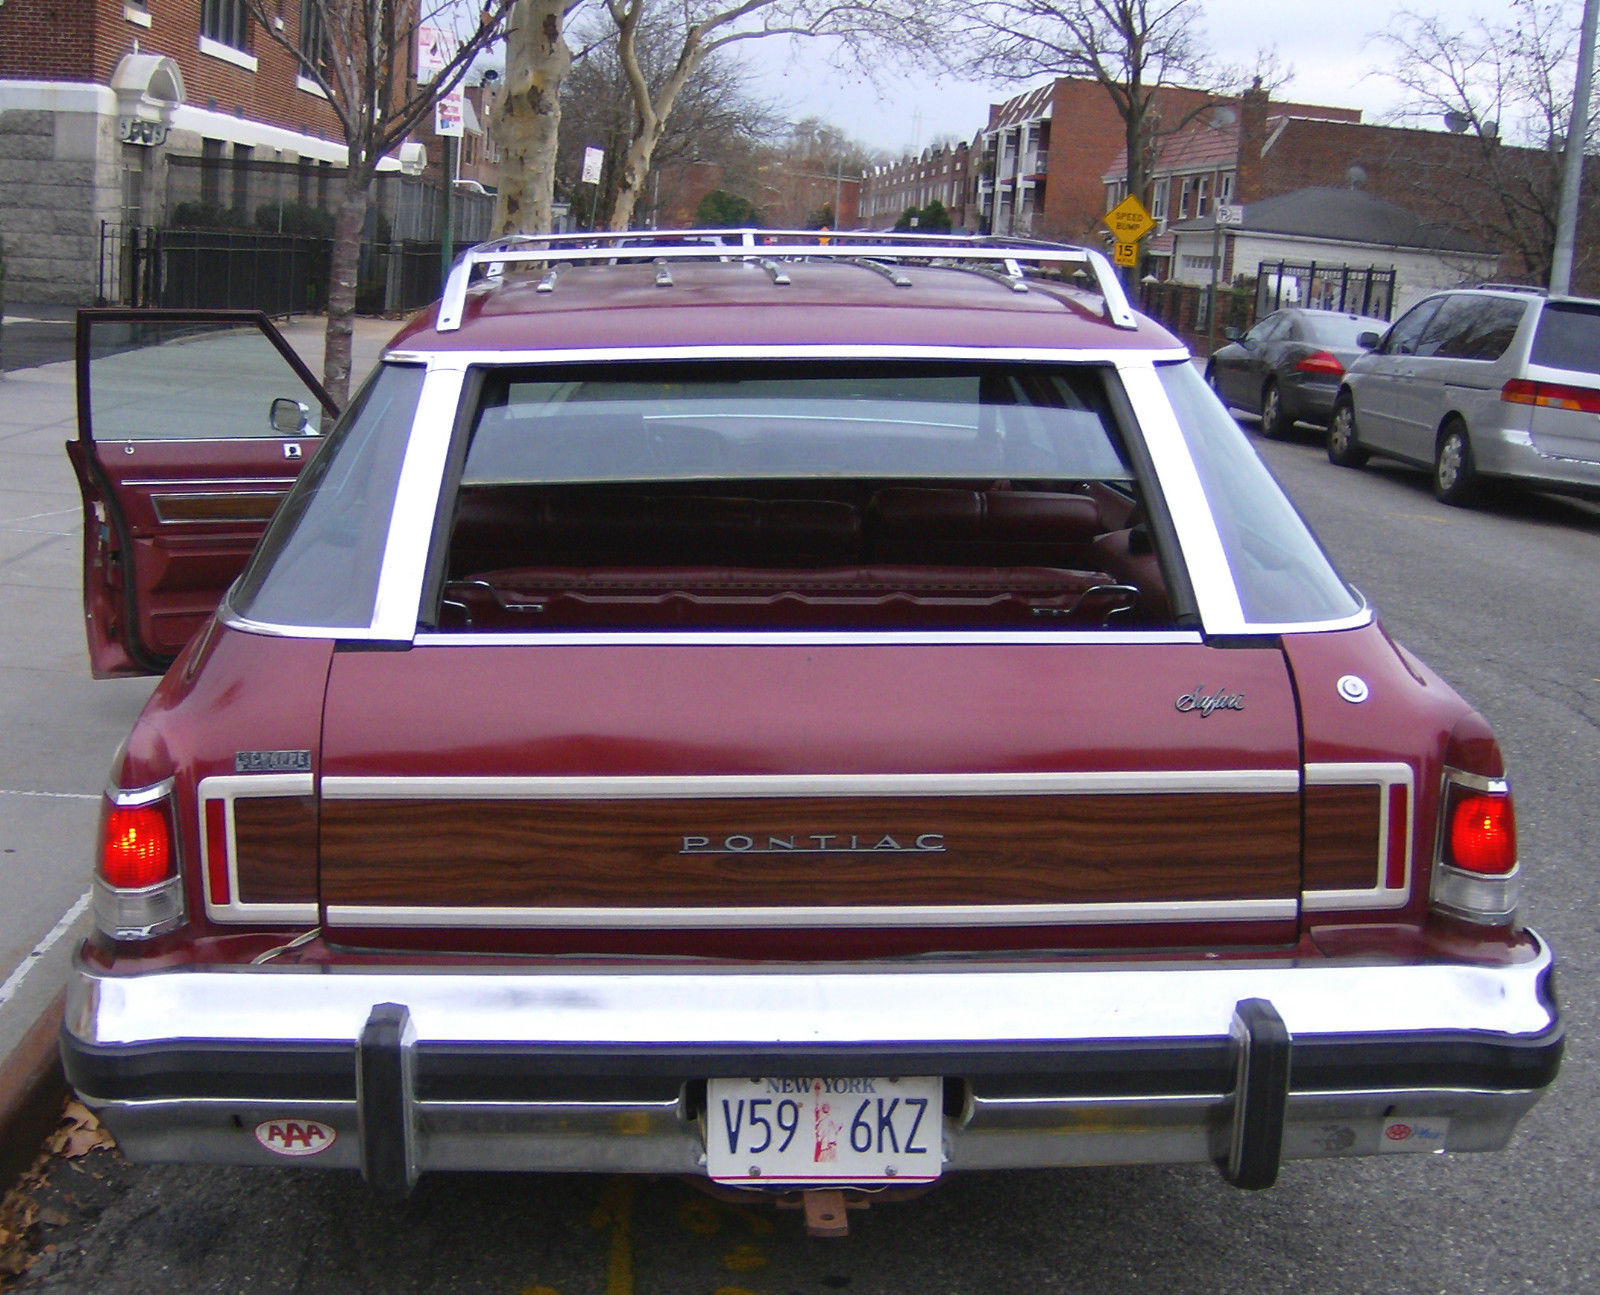 CC 241 076 1200 |1975 Catalina Station Wagon Buick